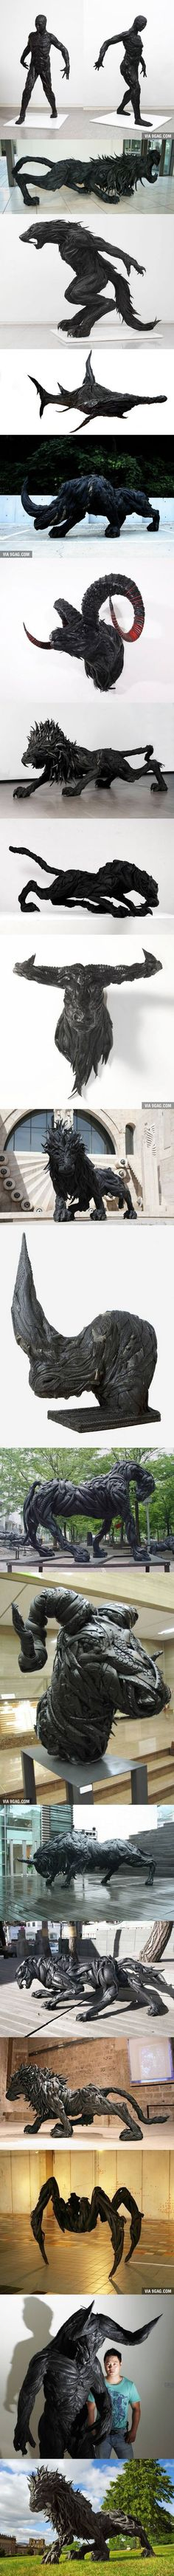 Sculptures made from recycled old tires: